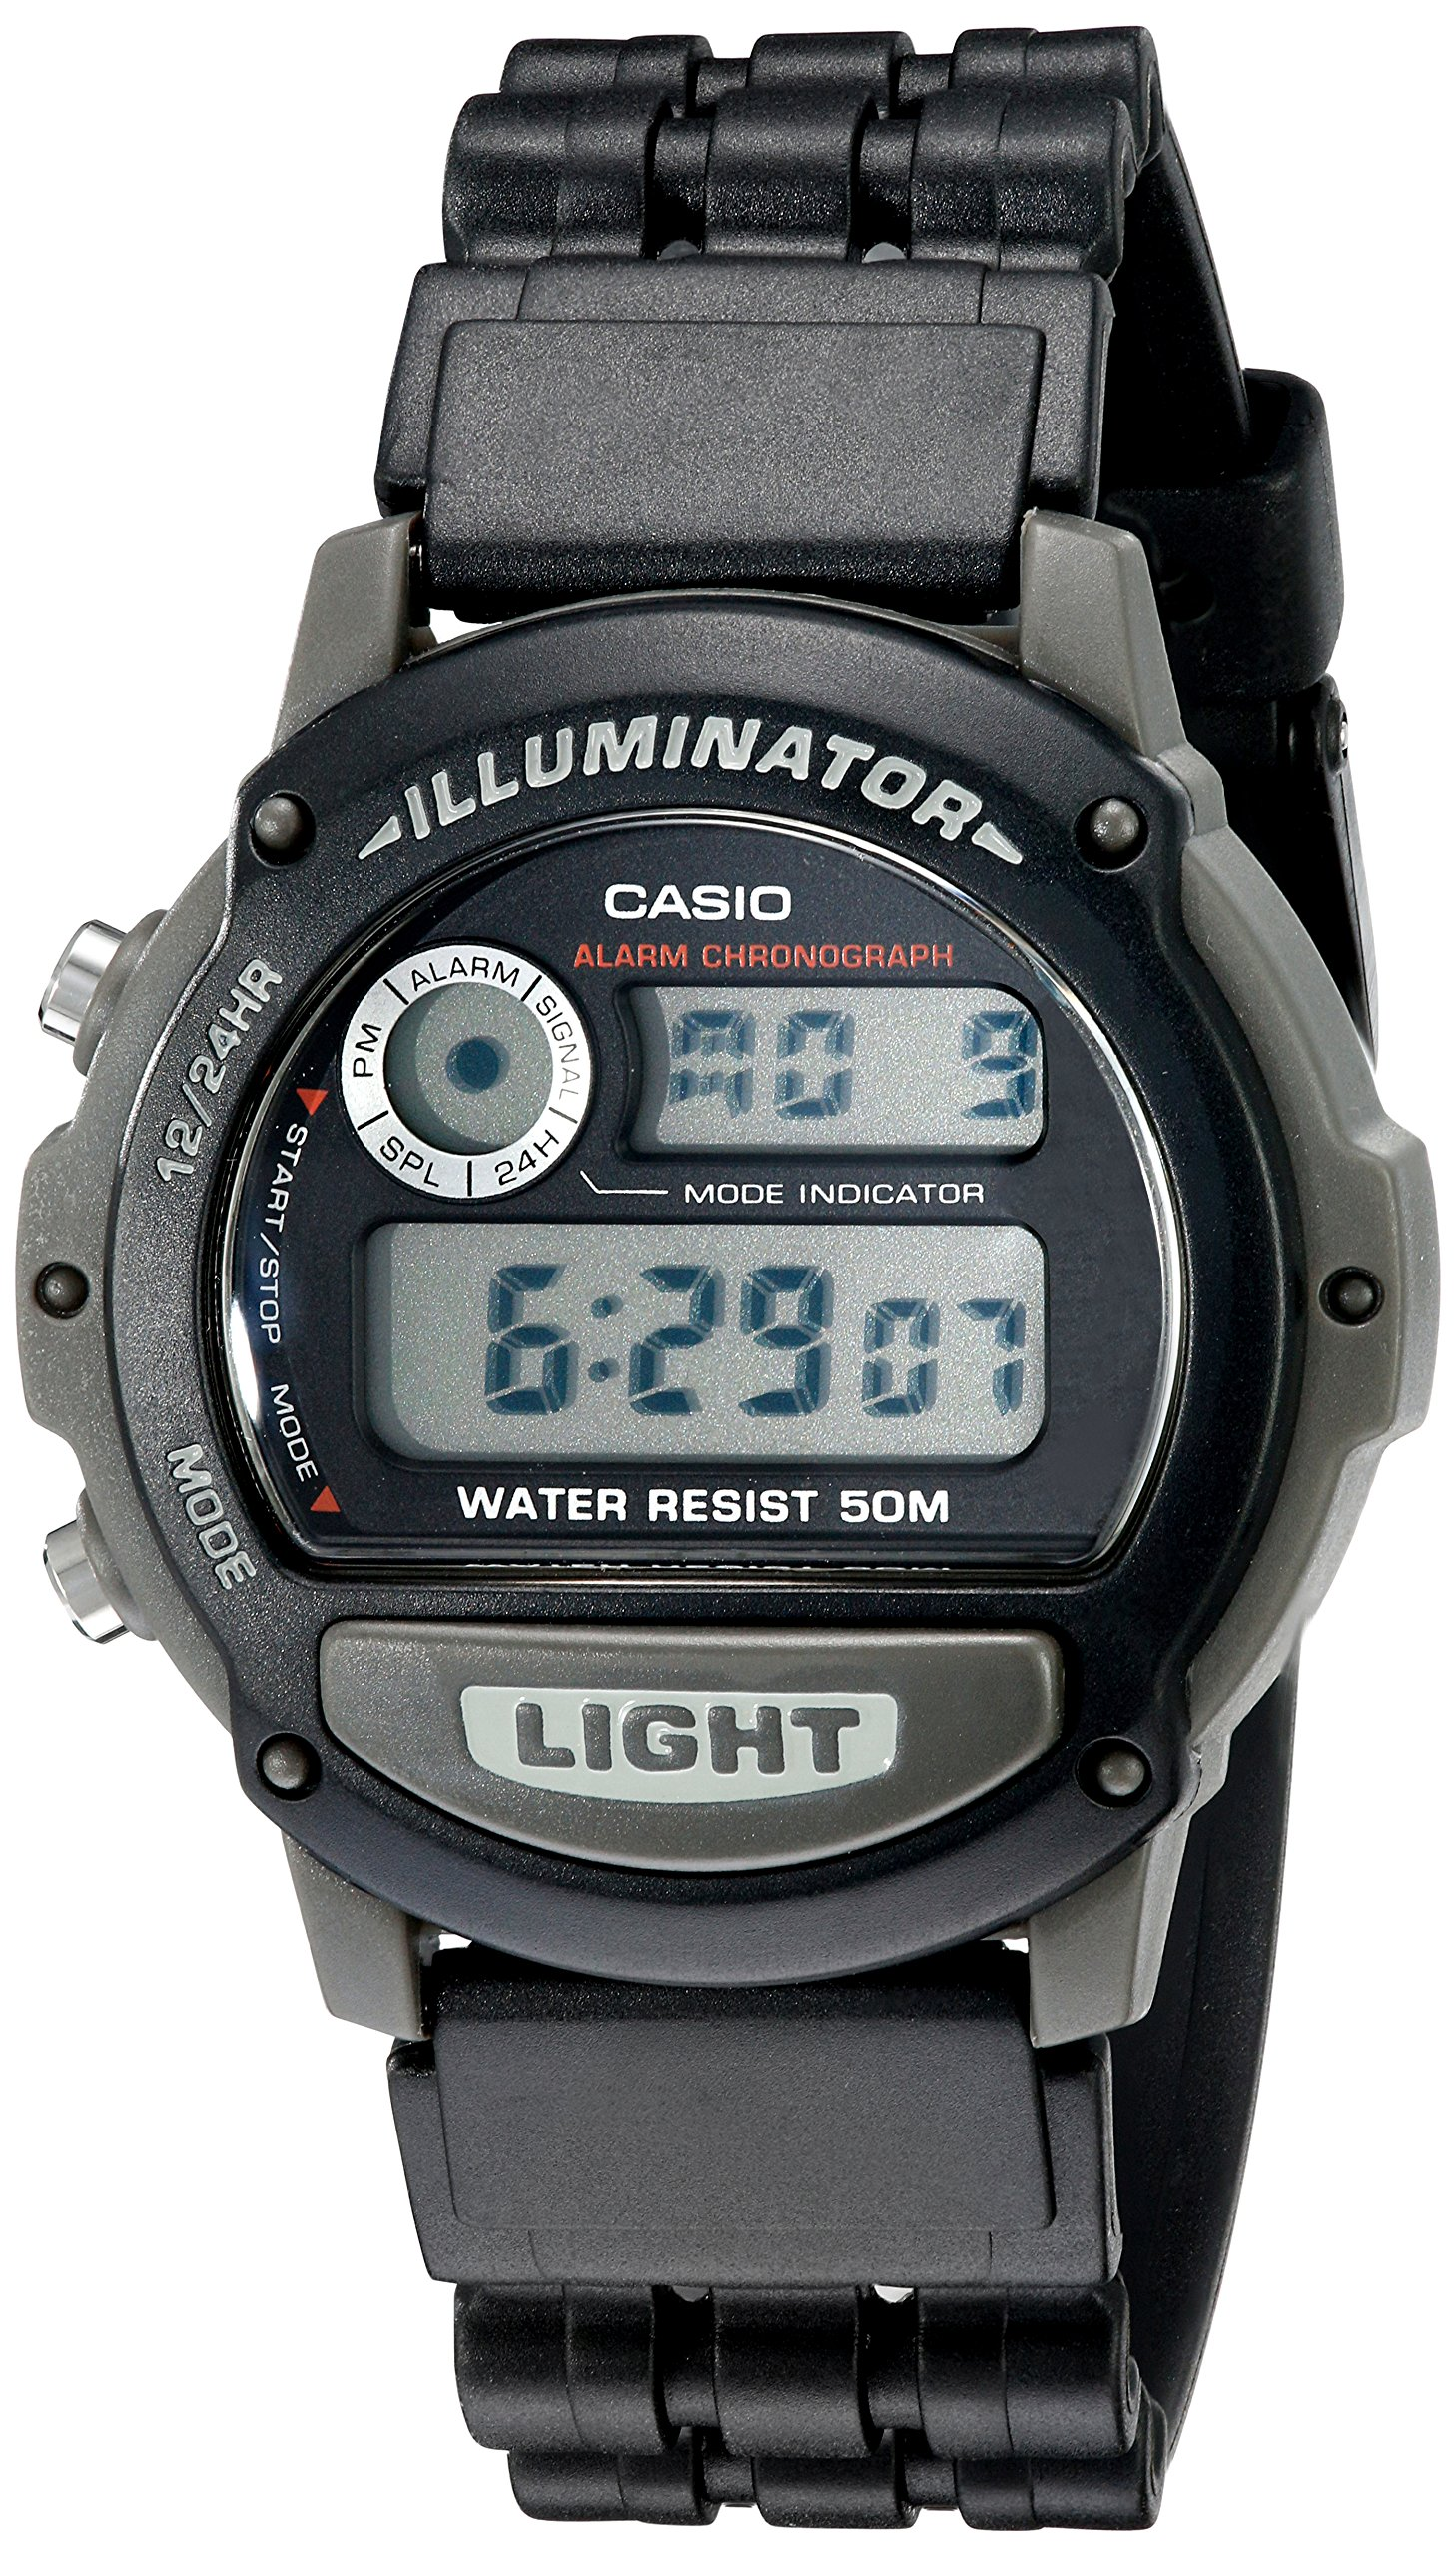 Casio W87H-1V Sports Wrist Watch (Black) by Casio